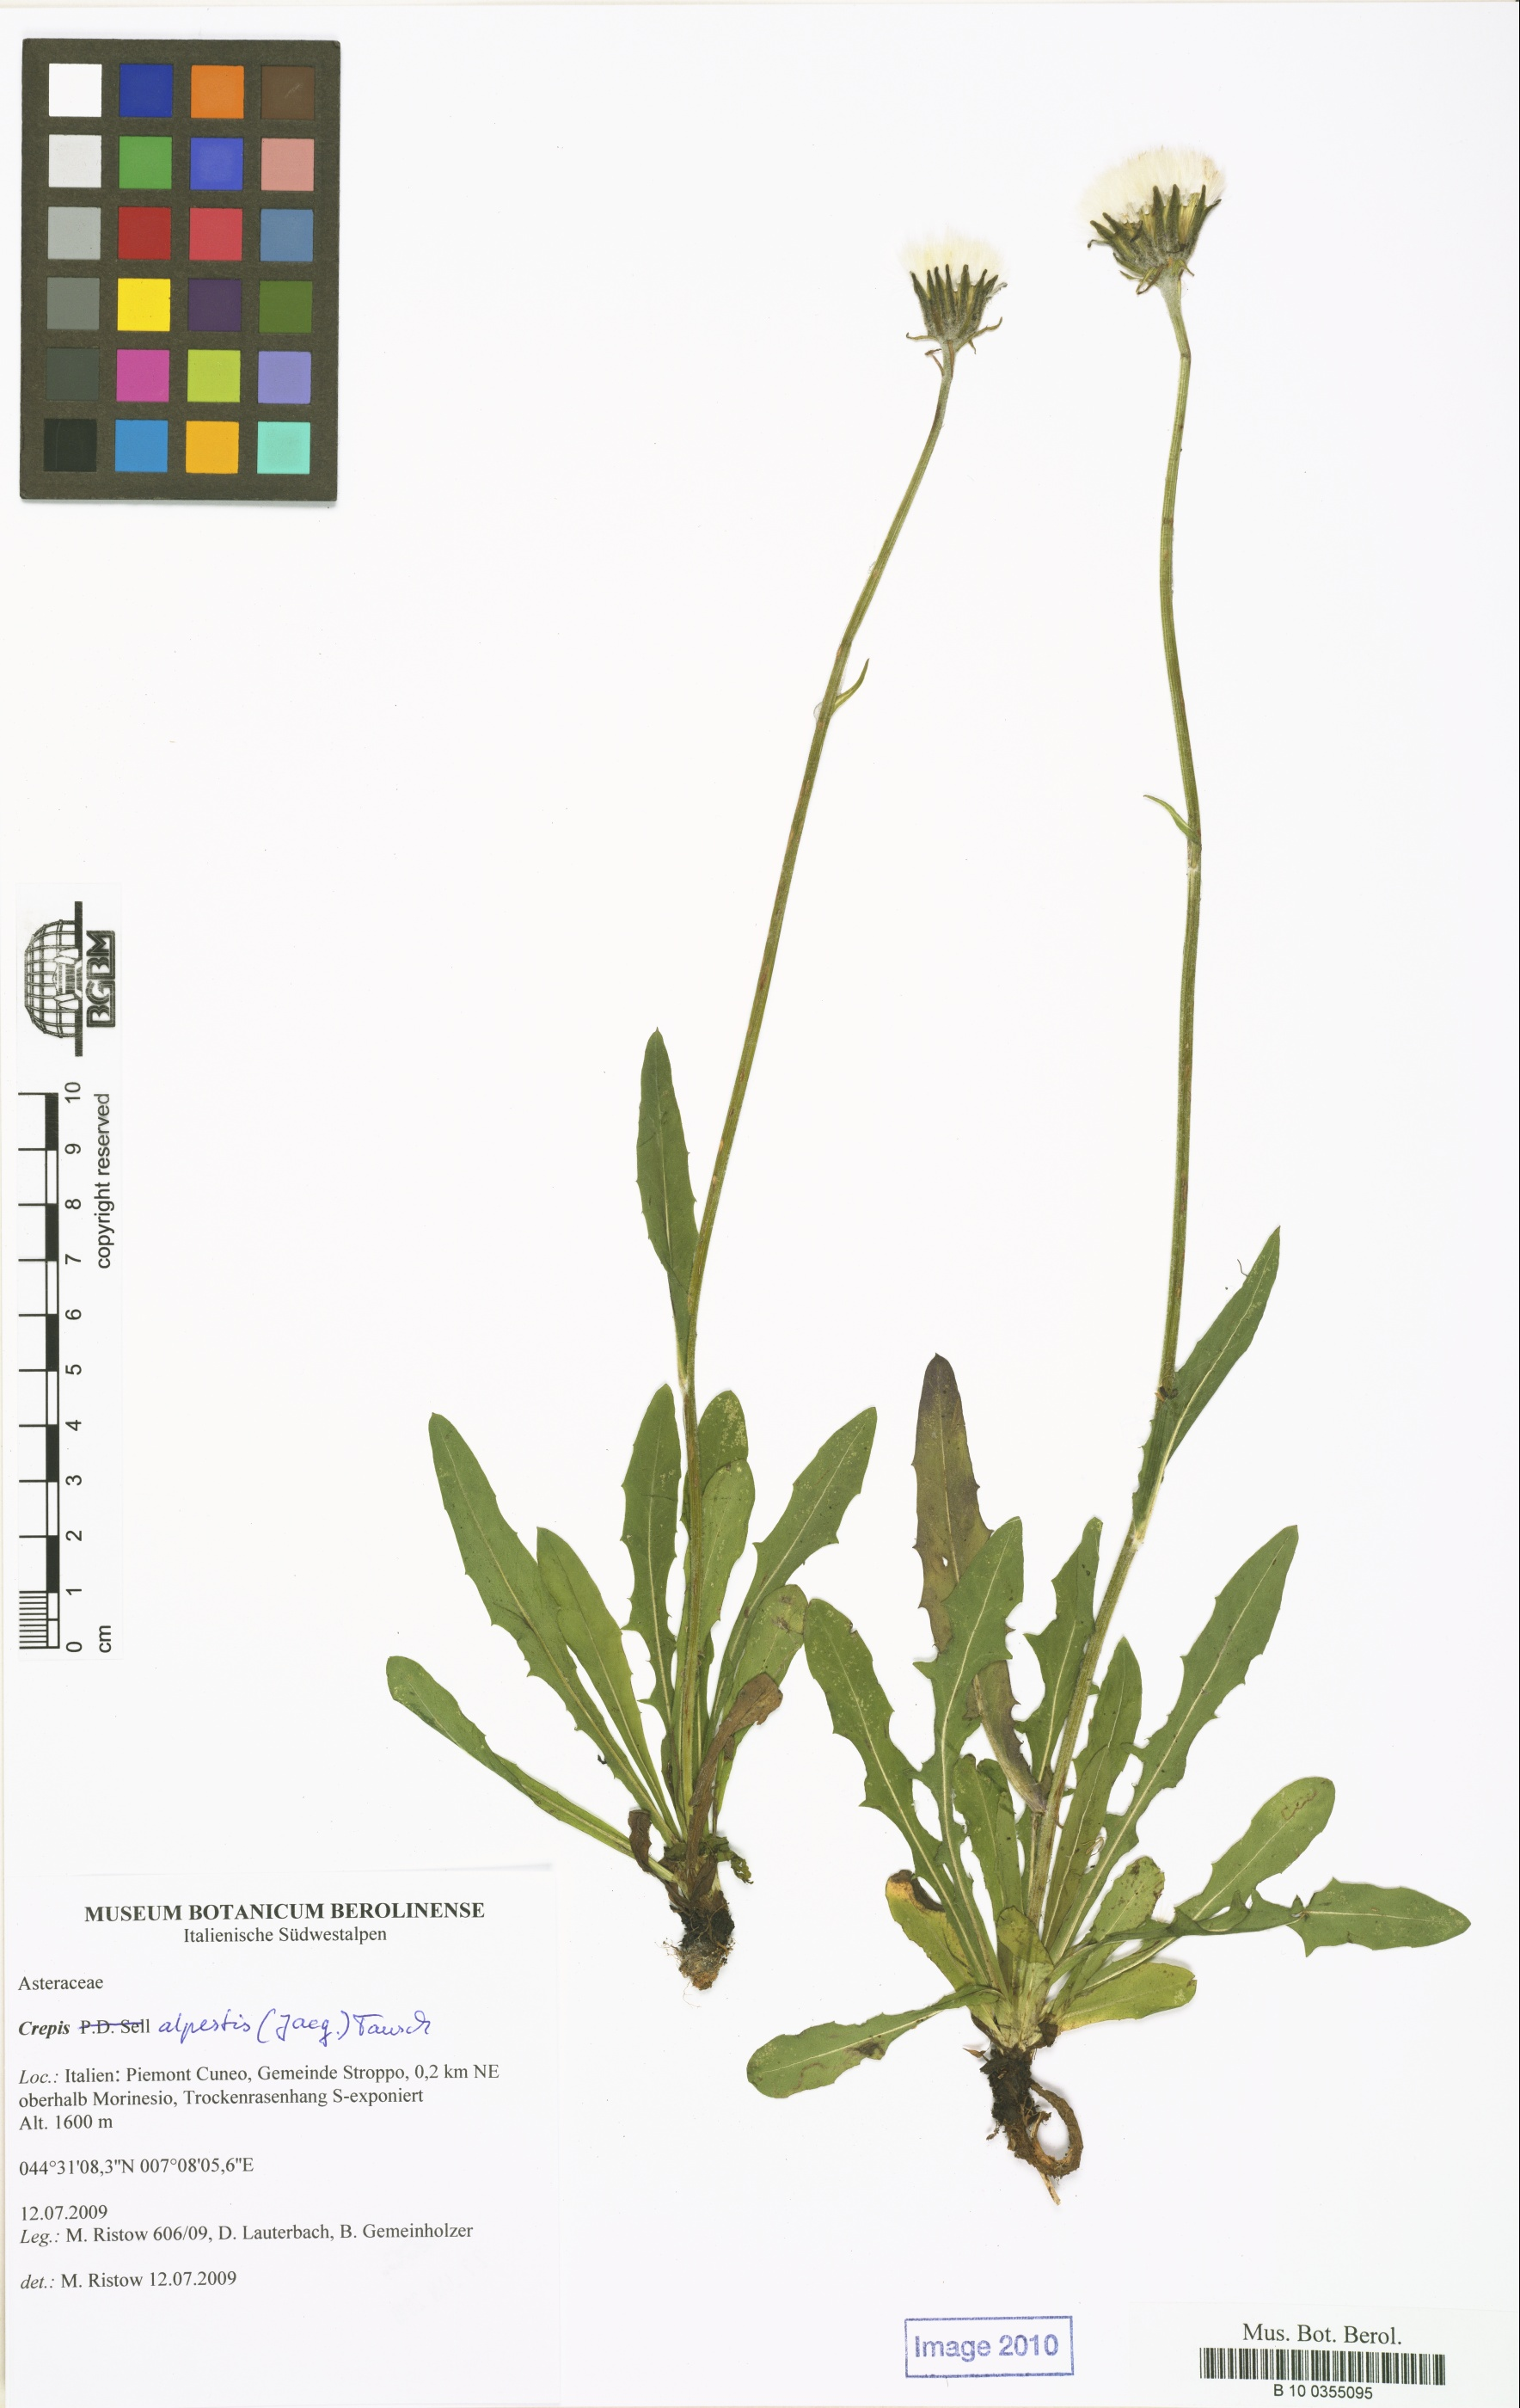 © Röpert, D. (Ed.) 2000- (continuously updated): Digital specimen images at the Herbarium Berolinense. - Published on the Internet http://ww2.bgbm.org/herbarium/ (Barcode: B 10 0355095 / ImageId: 315912) [accessed 20-Nov-11].<br>